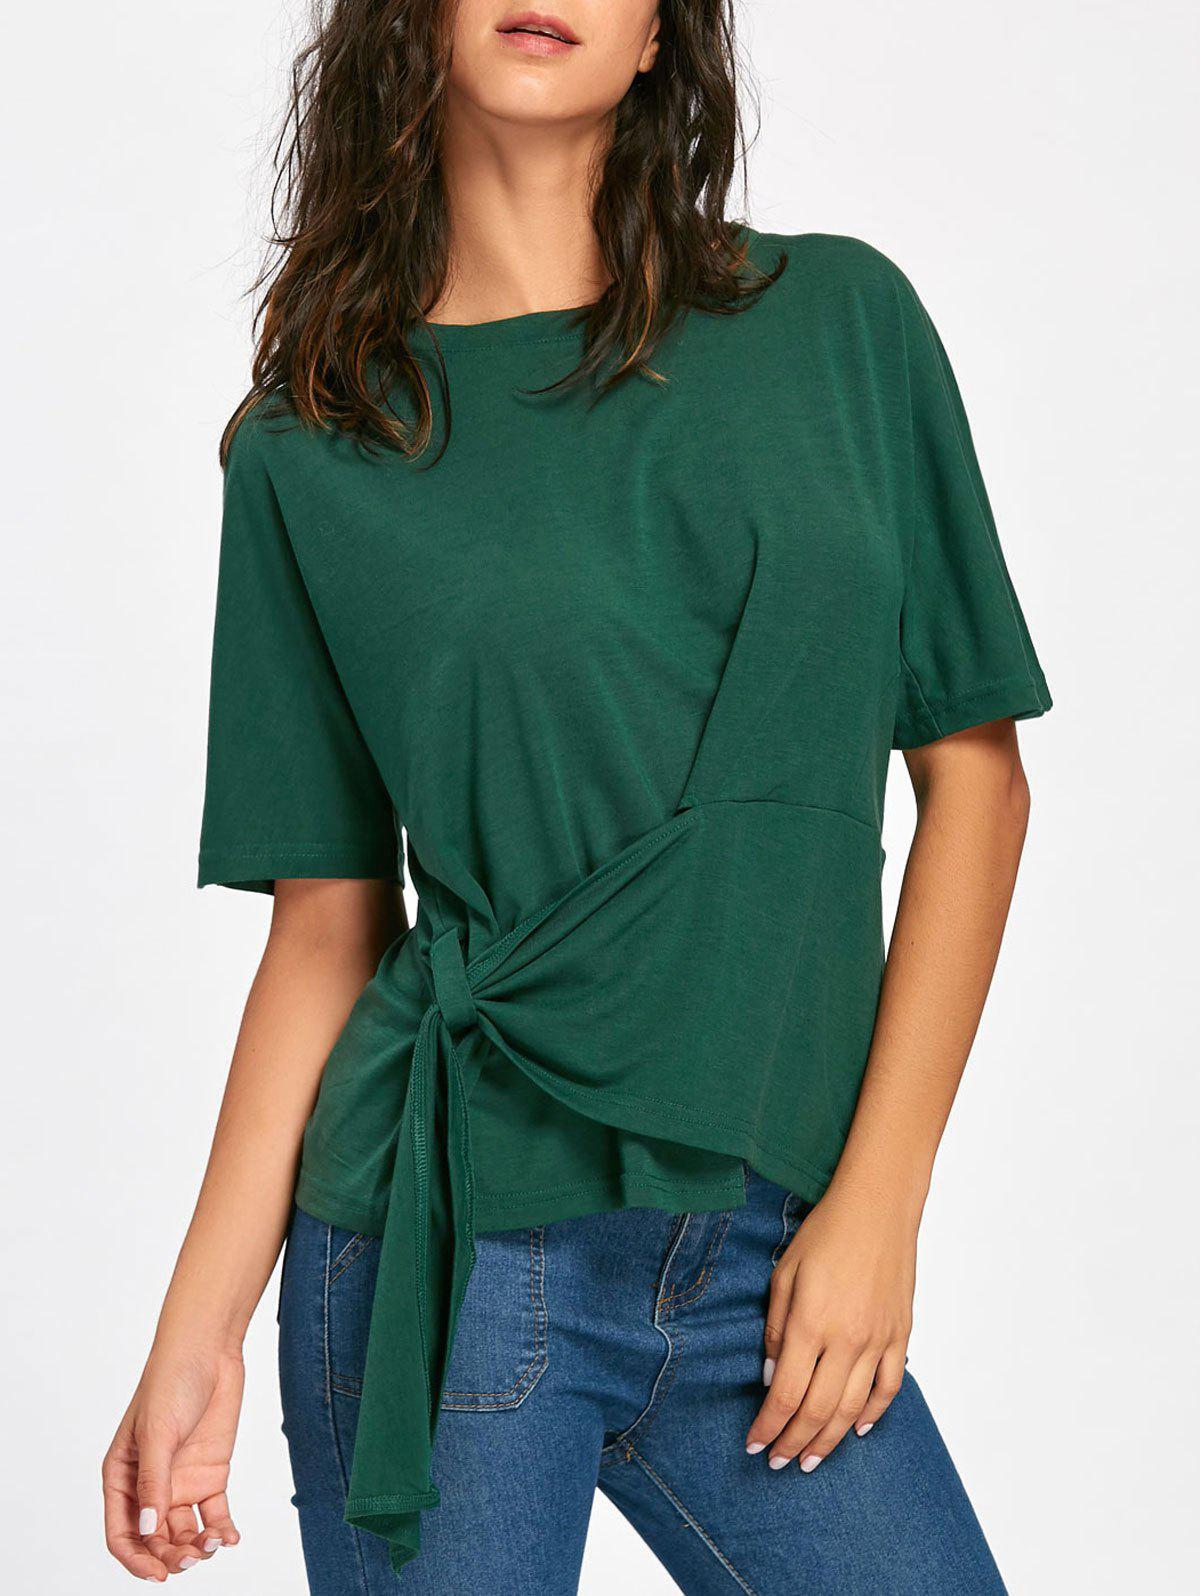 Batwing Sleeve Asymmetrical Front Tie T-shirt - BLACKISH GREEN L